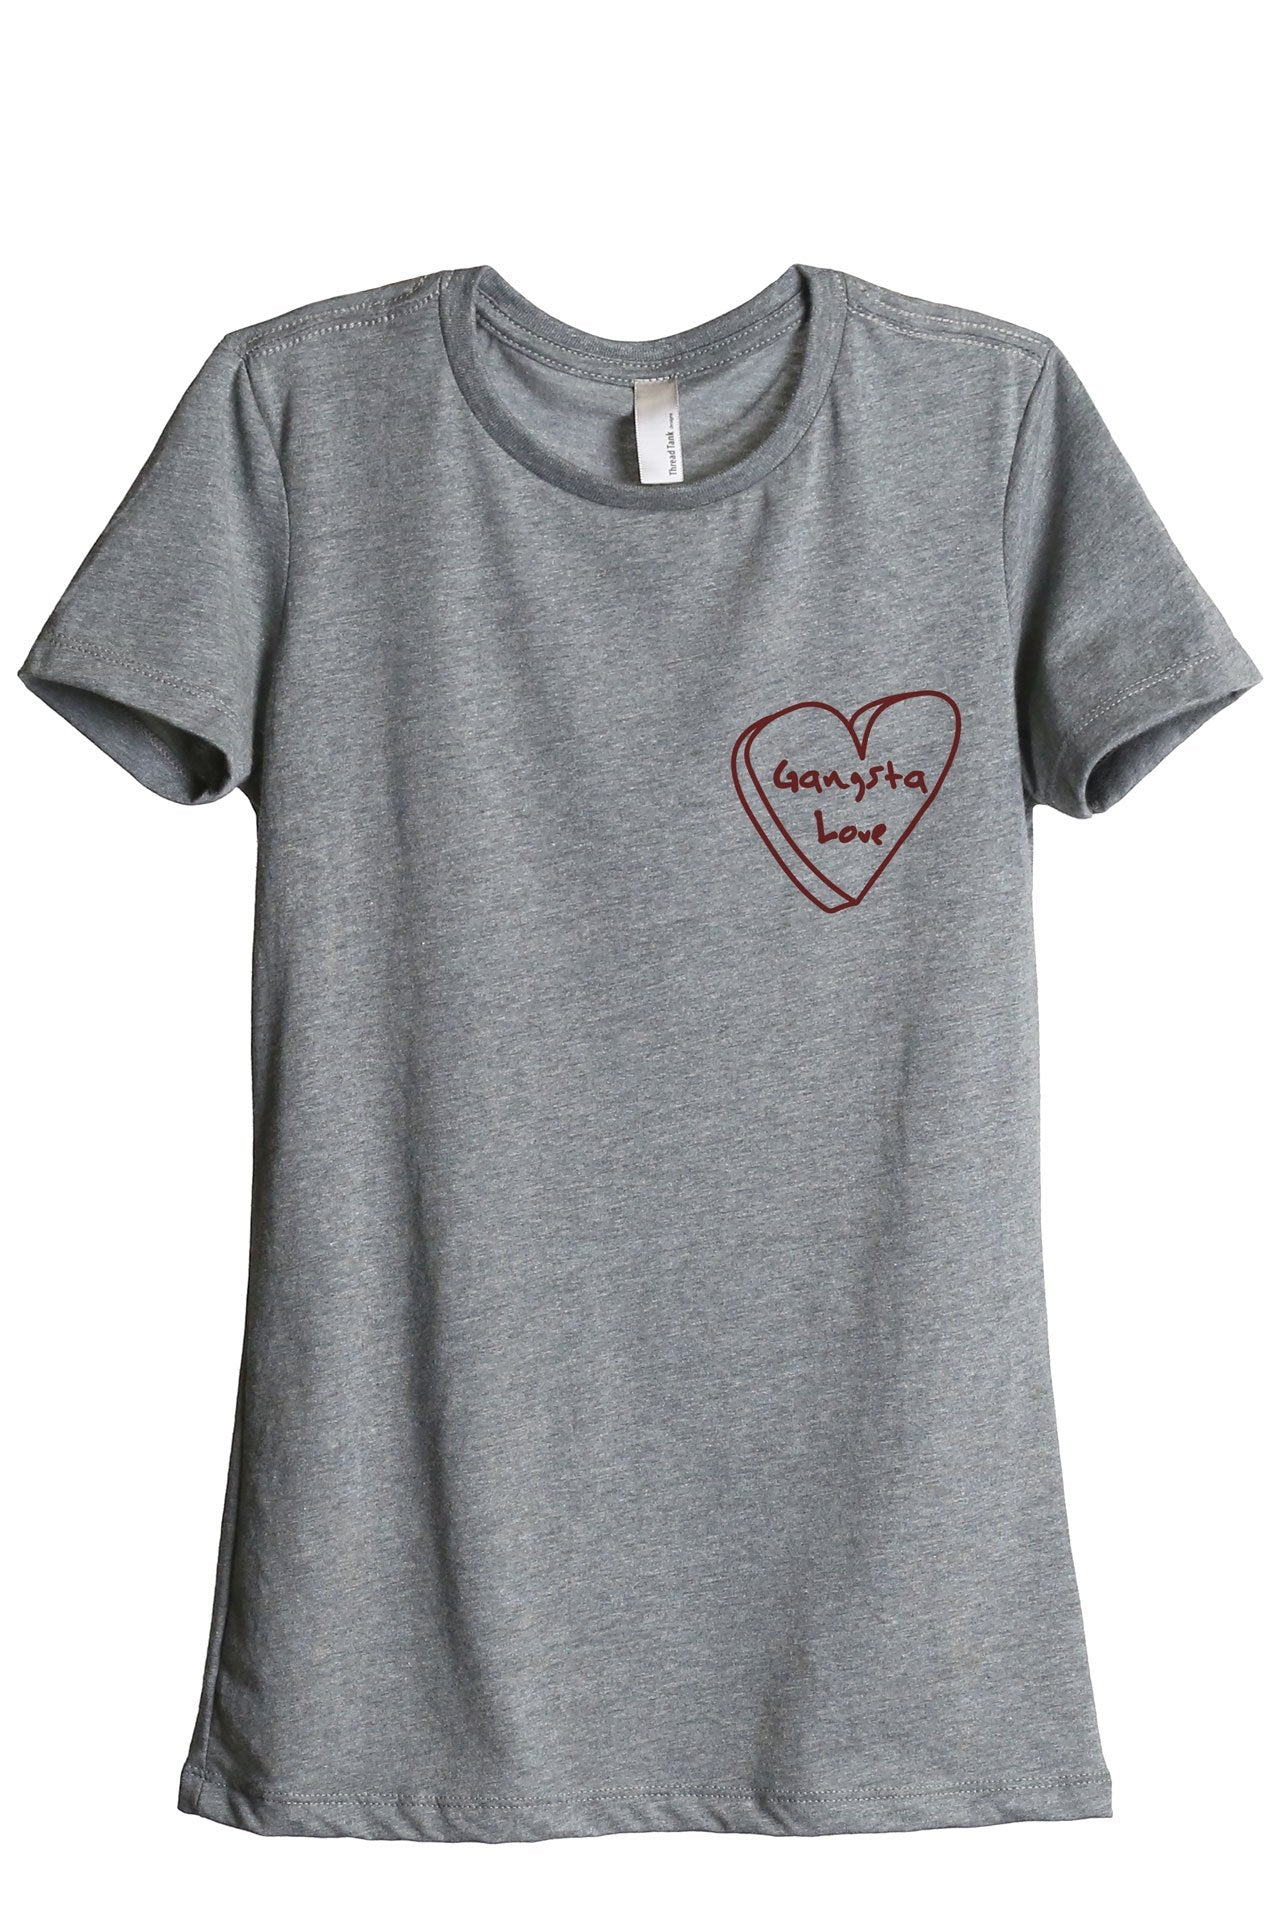 Gangsta Love - Thread Tank | Stories You Can Wear | T-Shirts, Tank Tops and Sweatshirts